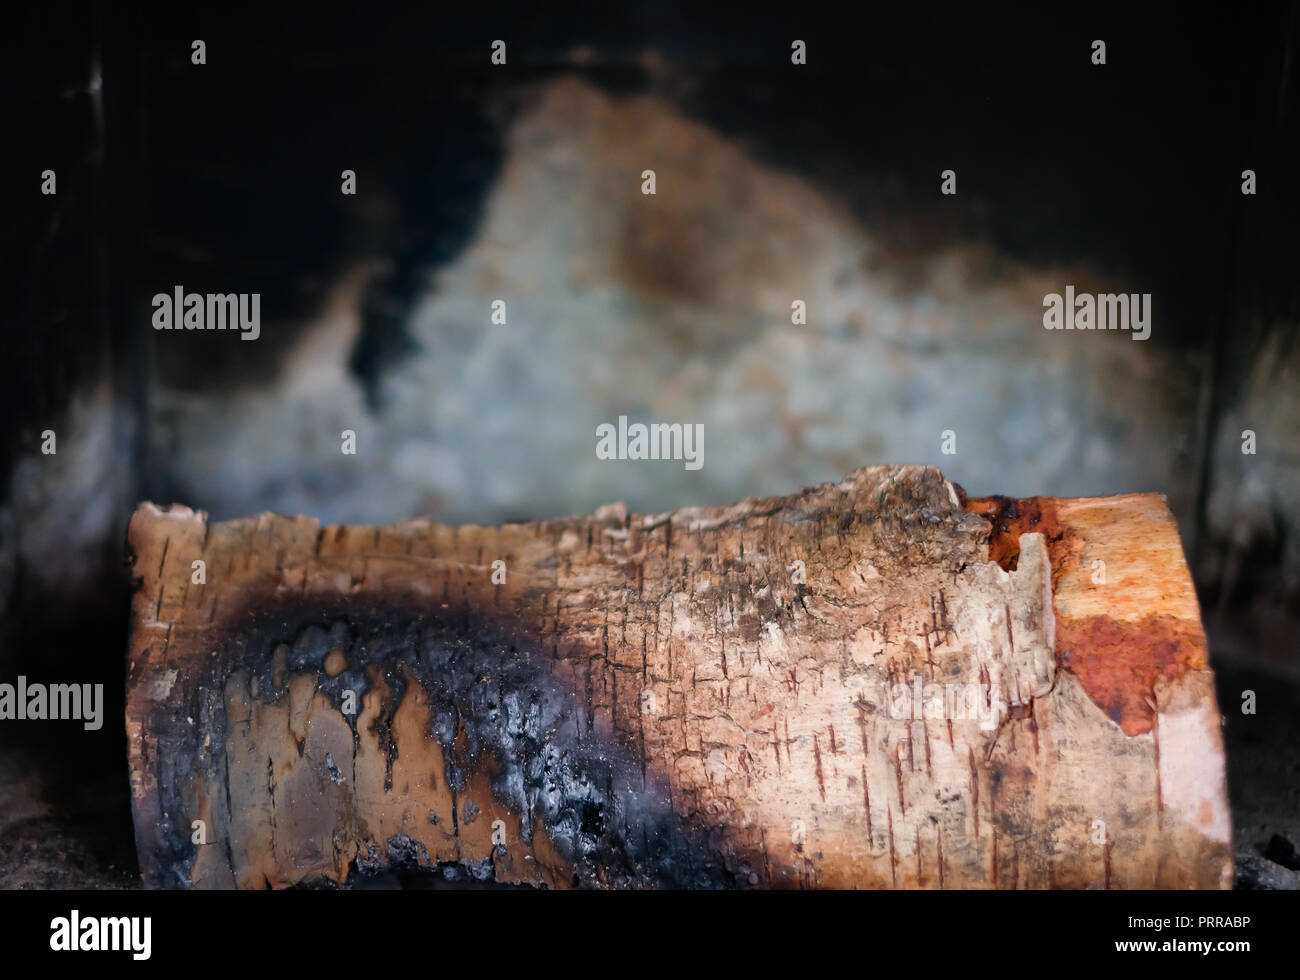 A bit burnt firewood lies in the fireplace or stove against the background of a wall covered with soot. - Stock Image